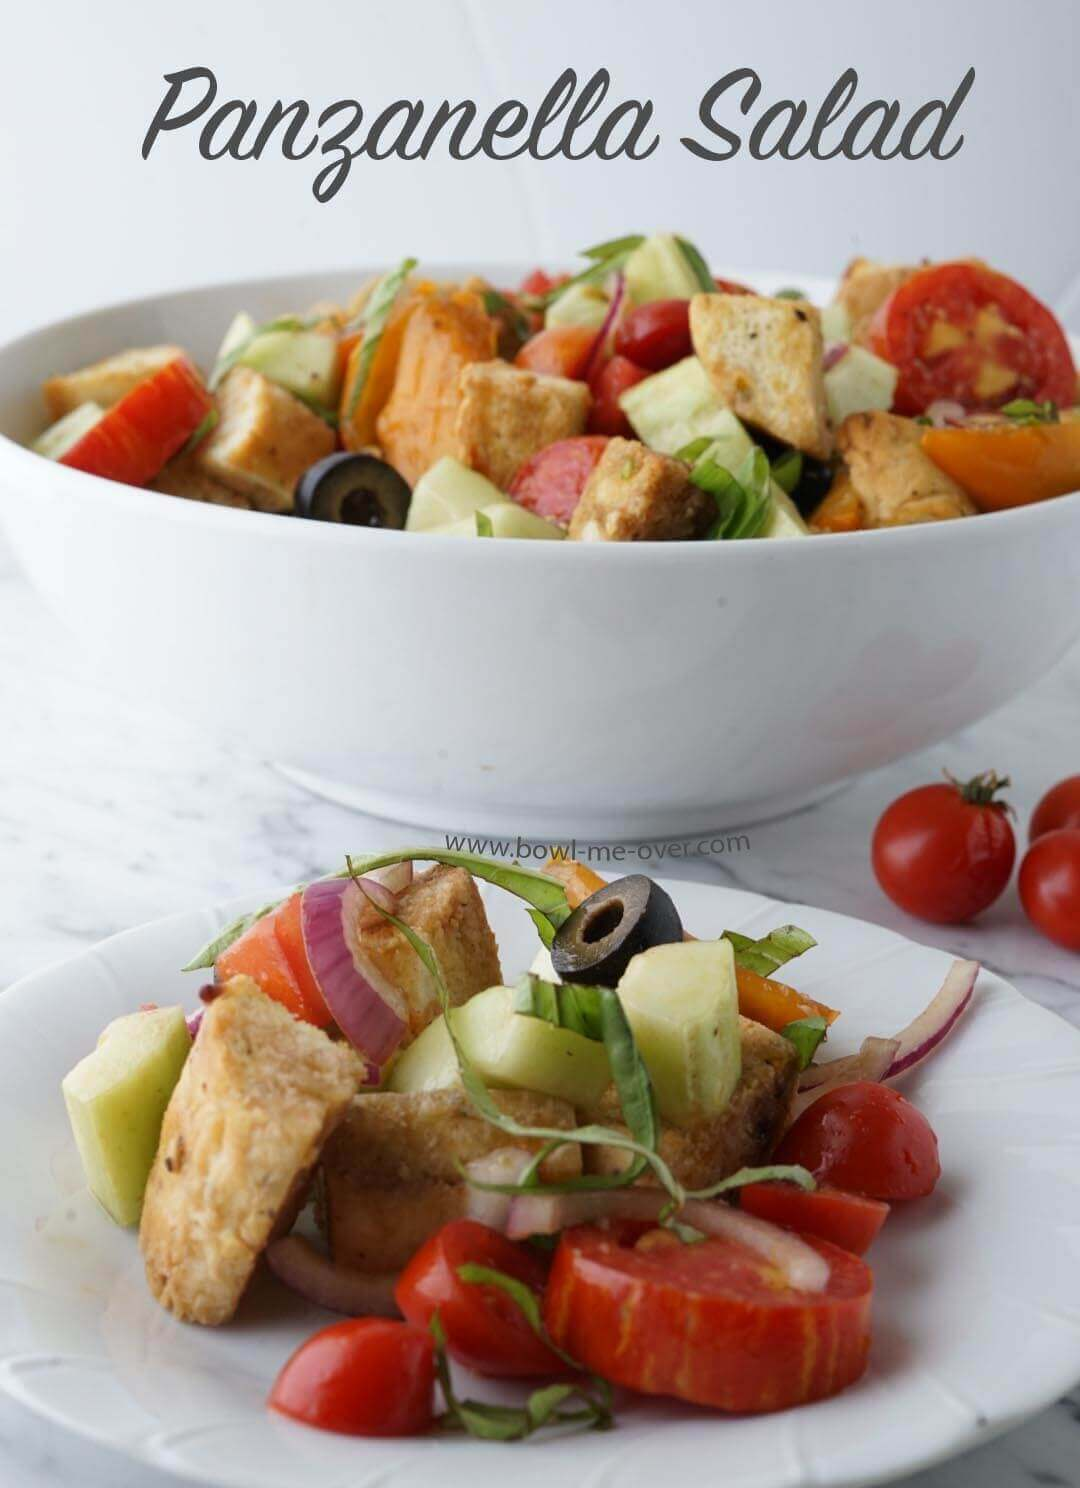 Panzanella Salad is a great summer salad!